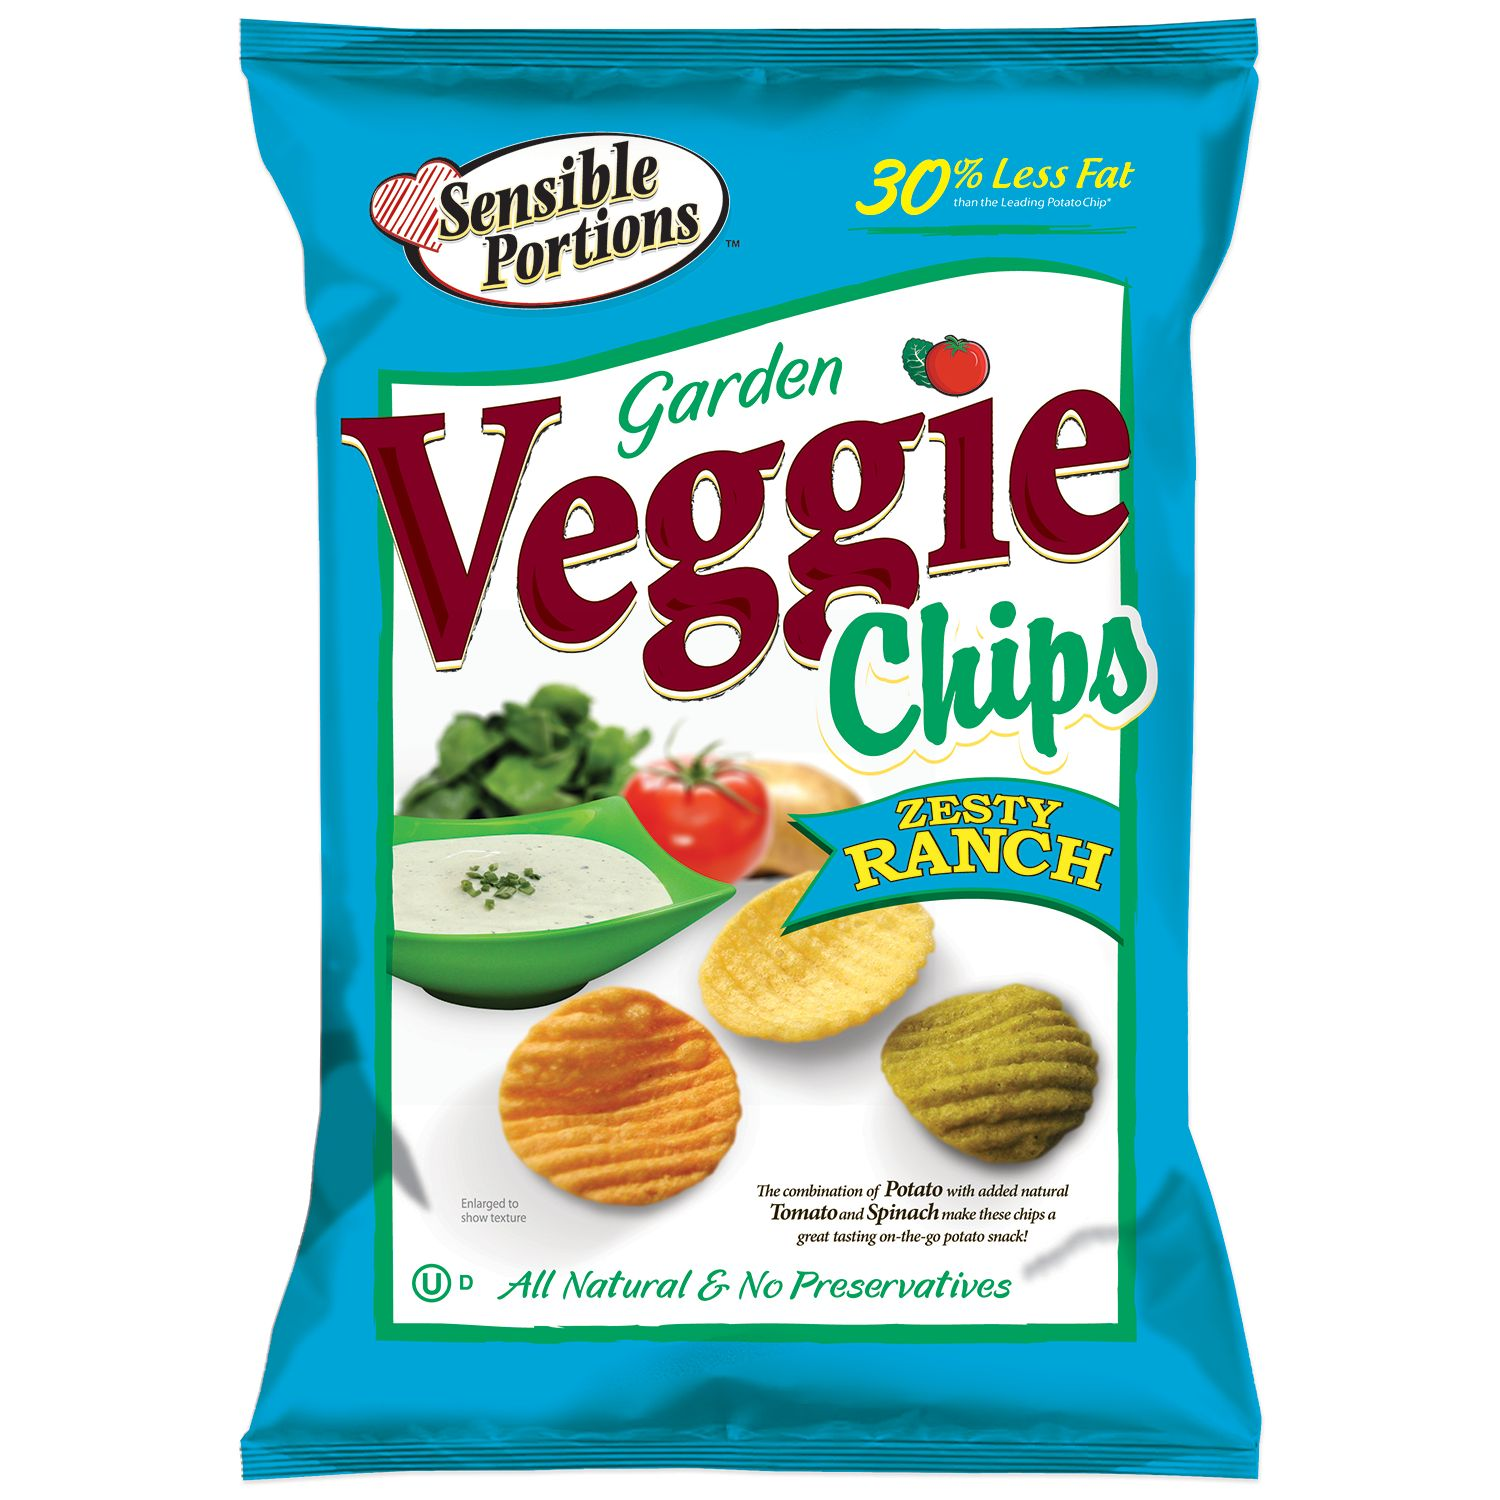 Sensible portions zesty ranch veggie chips 18 oz ebay - Sensible portions garden veggie chips ...